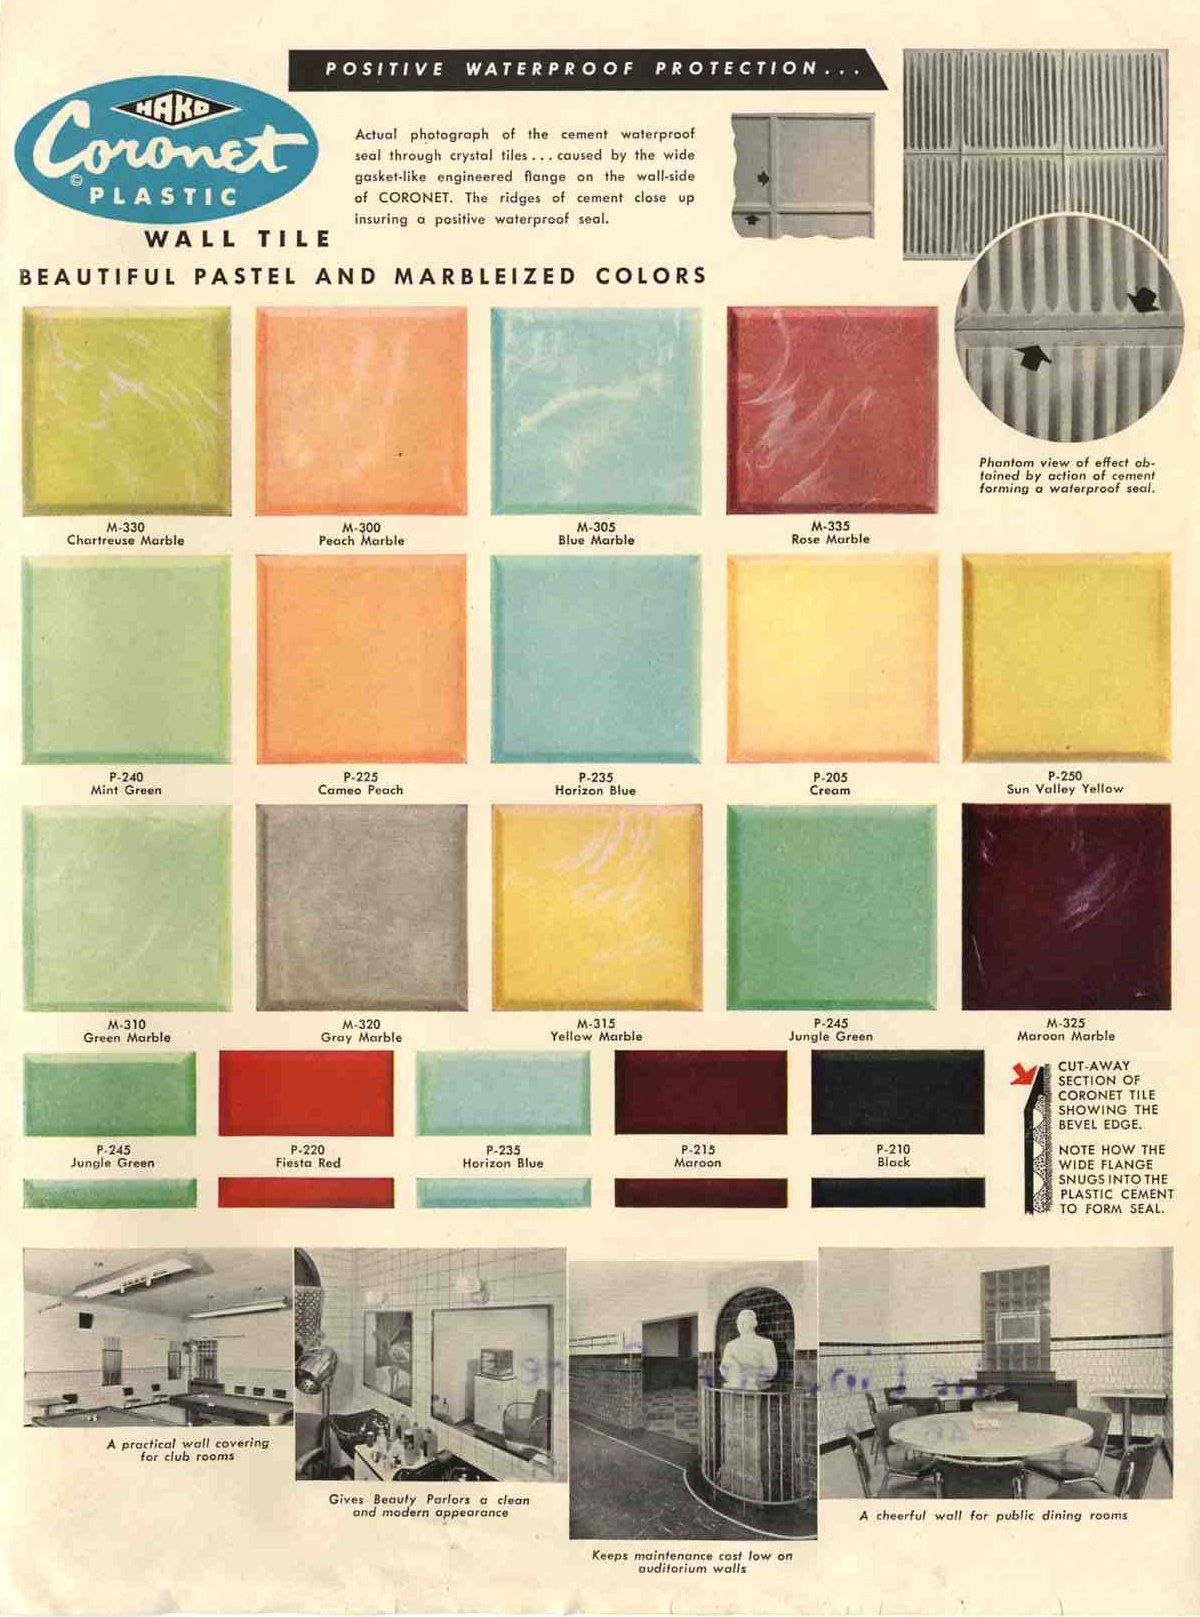 Delightful Plastic Bathroom Tile: 20 Pages Of Images From 3 Catalogs   Retro Renovation